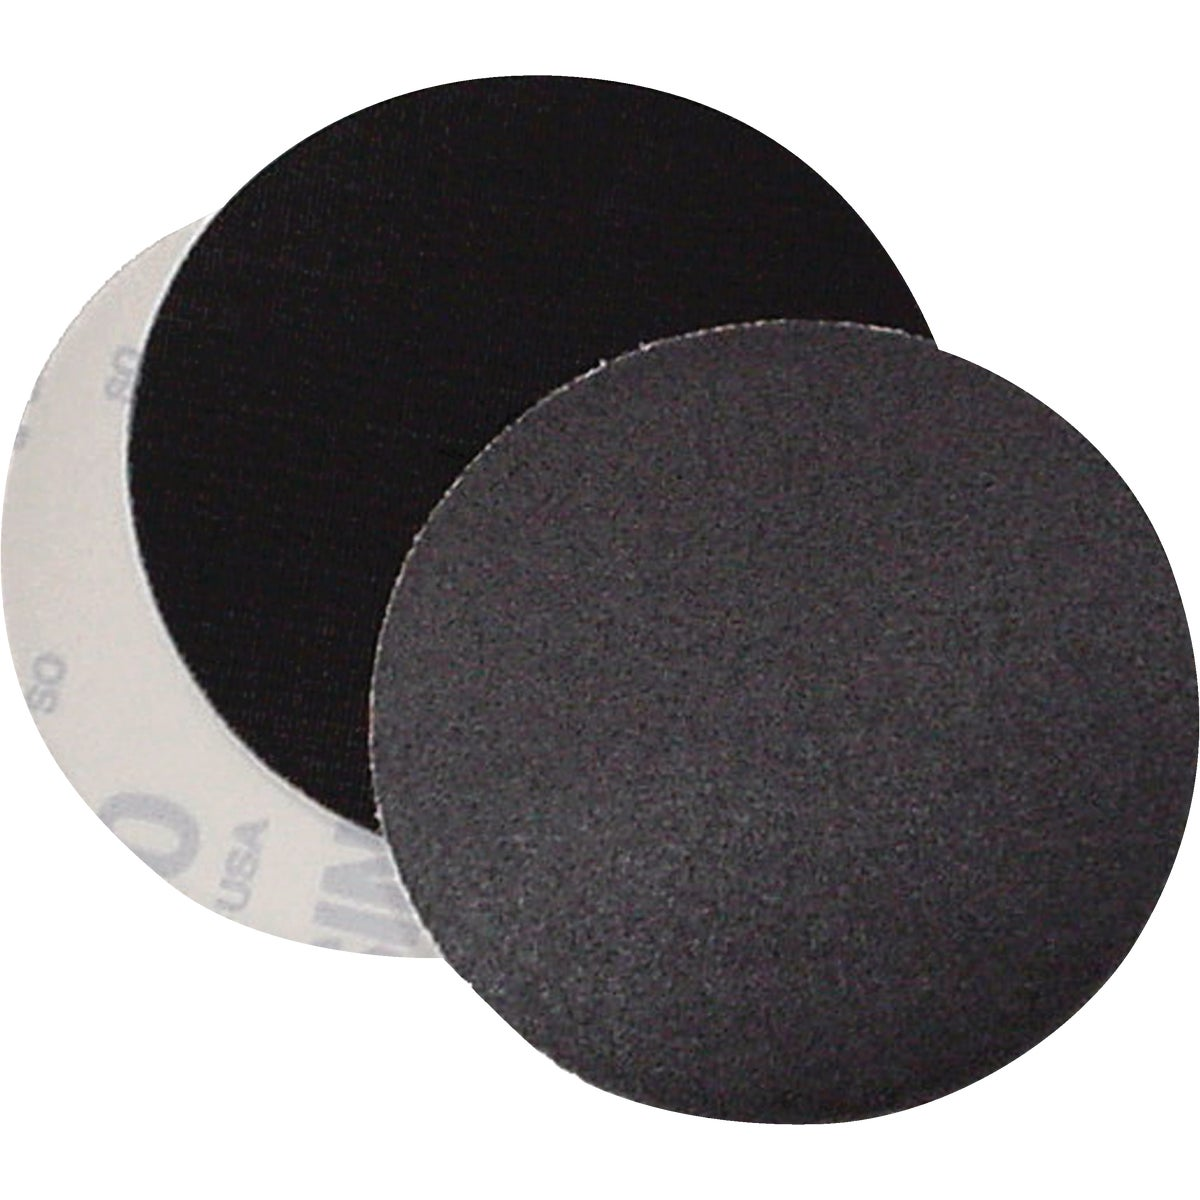 "6-7/8"" 60G SANDING SHEET - 003-867860 by Virginia Abrasives"